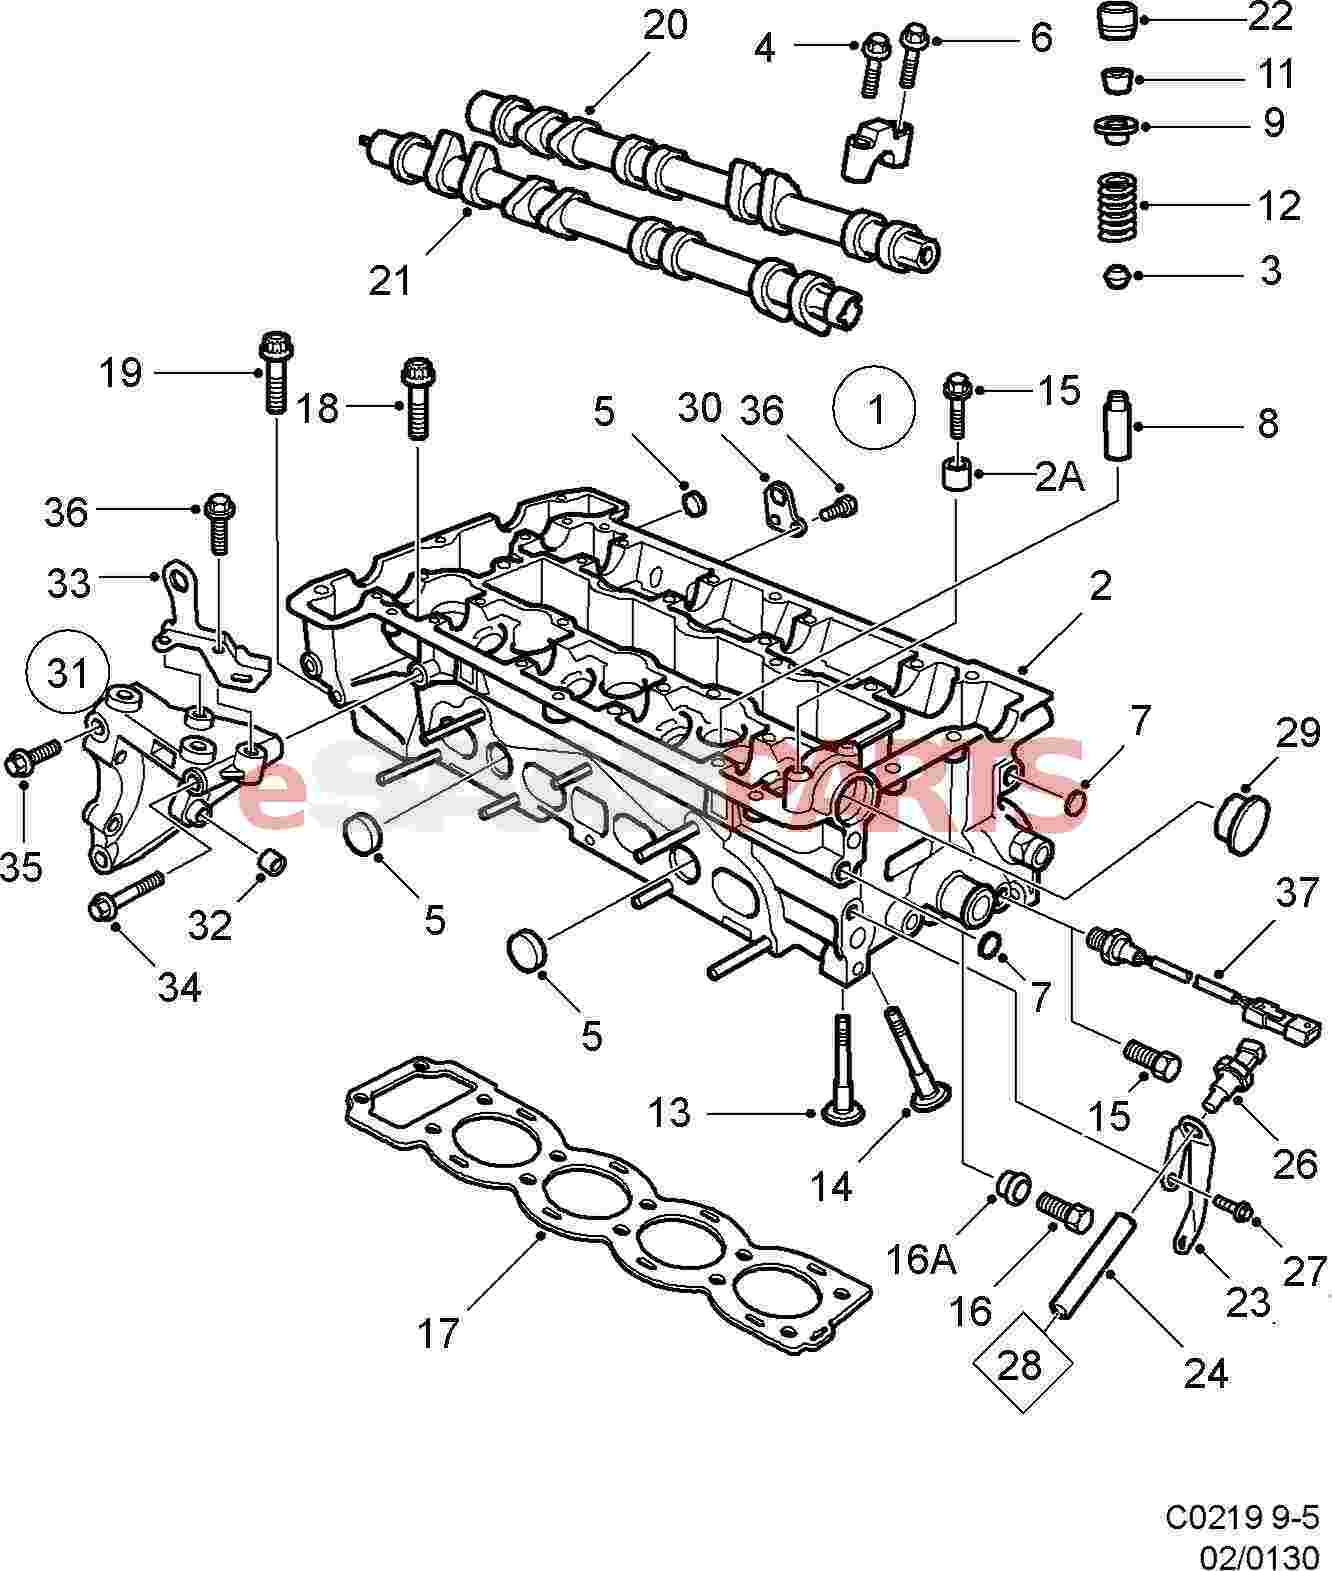 Wrg Vw Jetta 2 0 Engine Diagram